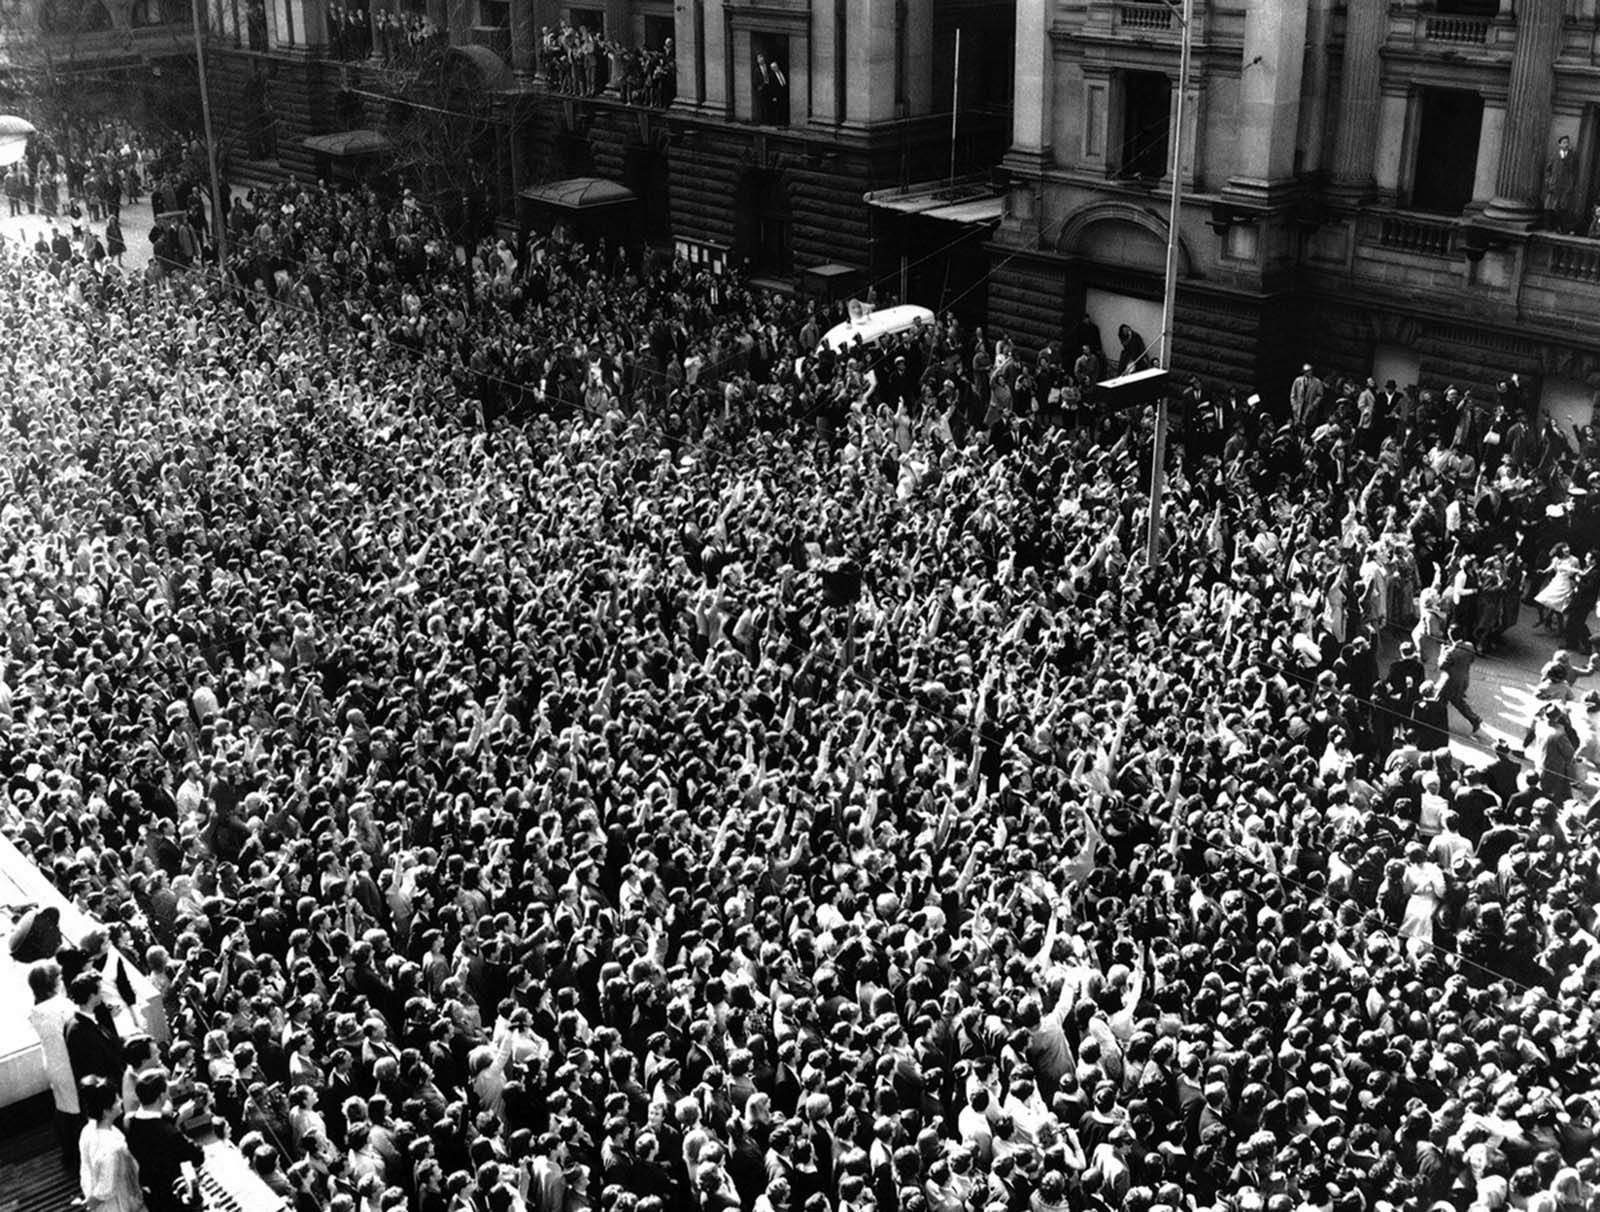 A section of the huge crowd which gathered outside the Town Hall in Melbourne, Australia, on June 16, 1964, to greet the Beatles, during their tour of Australia and New Zealand.